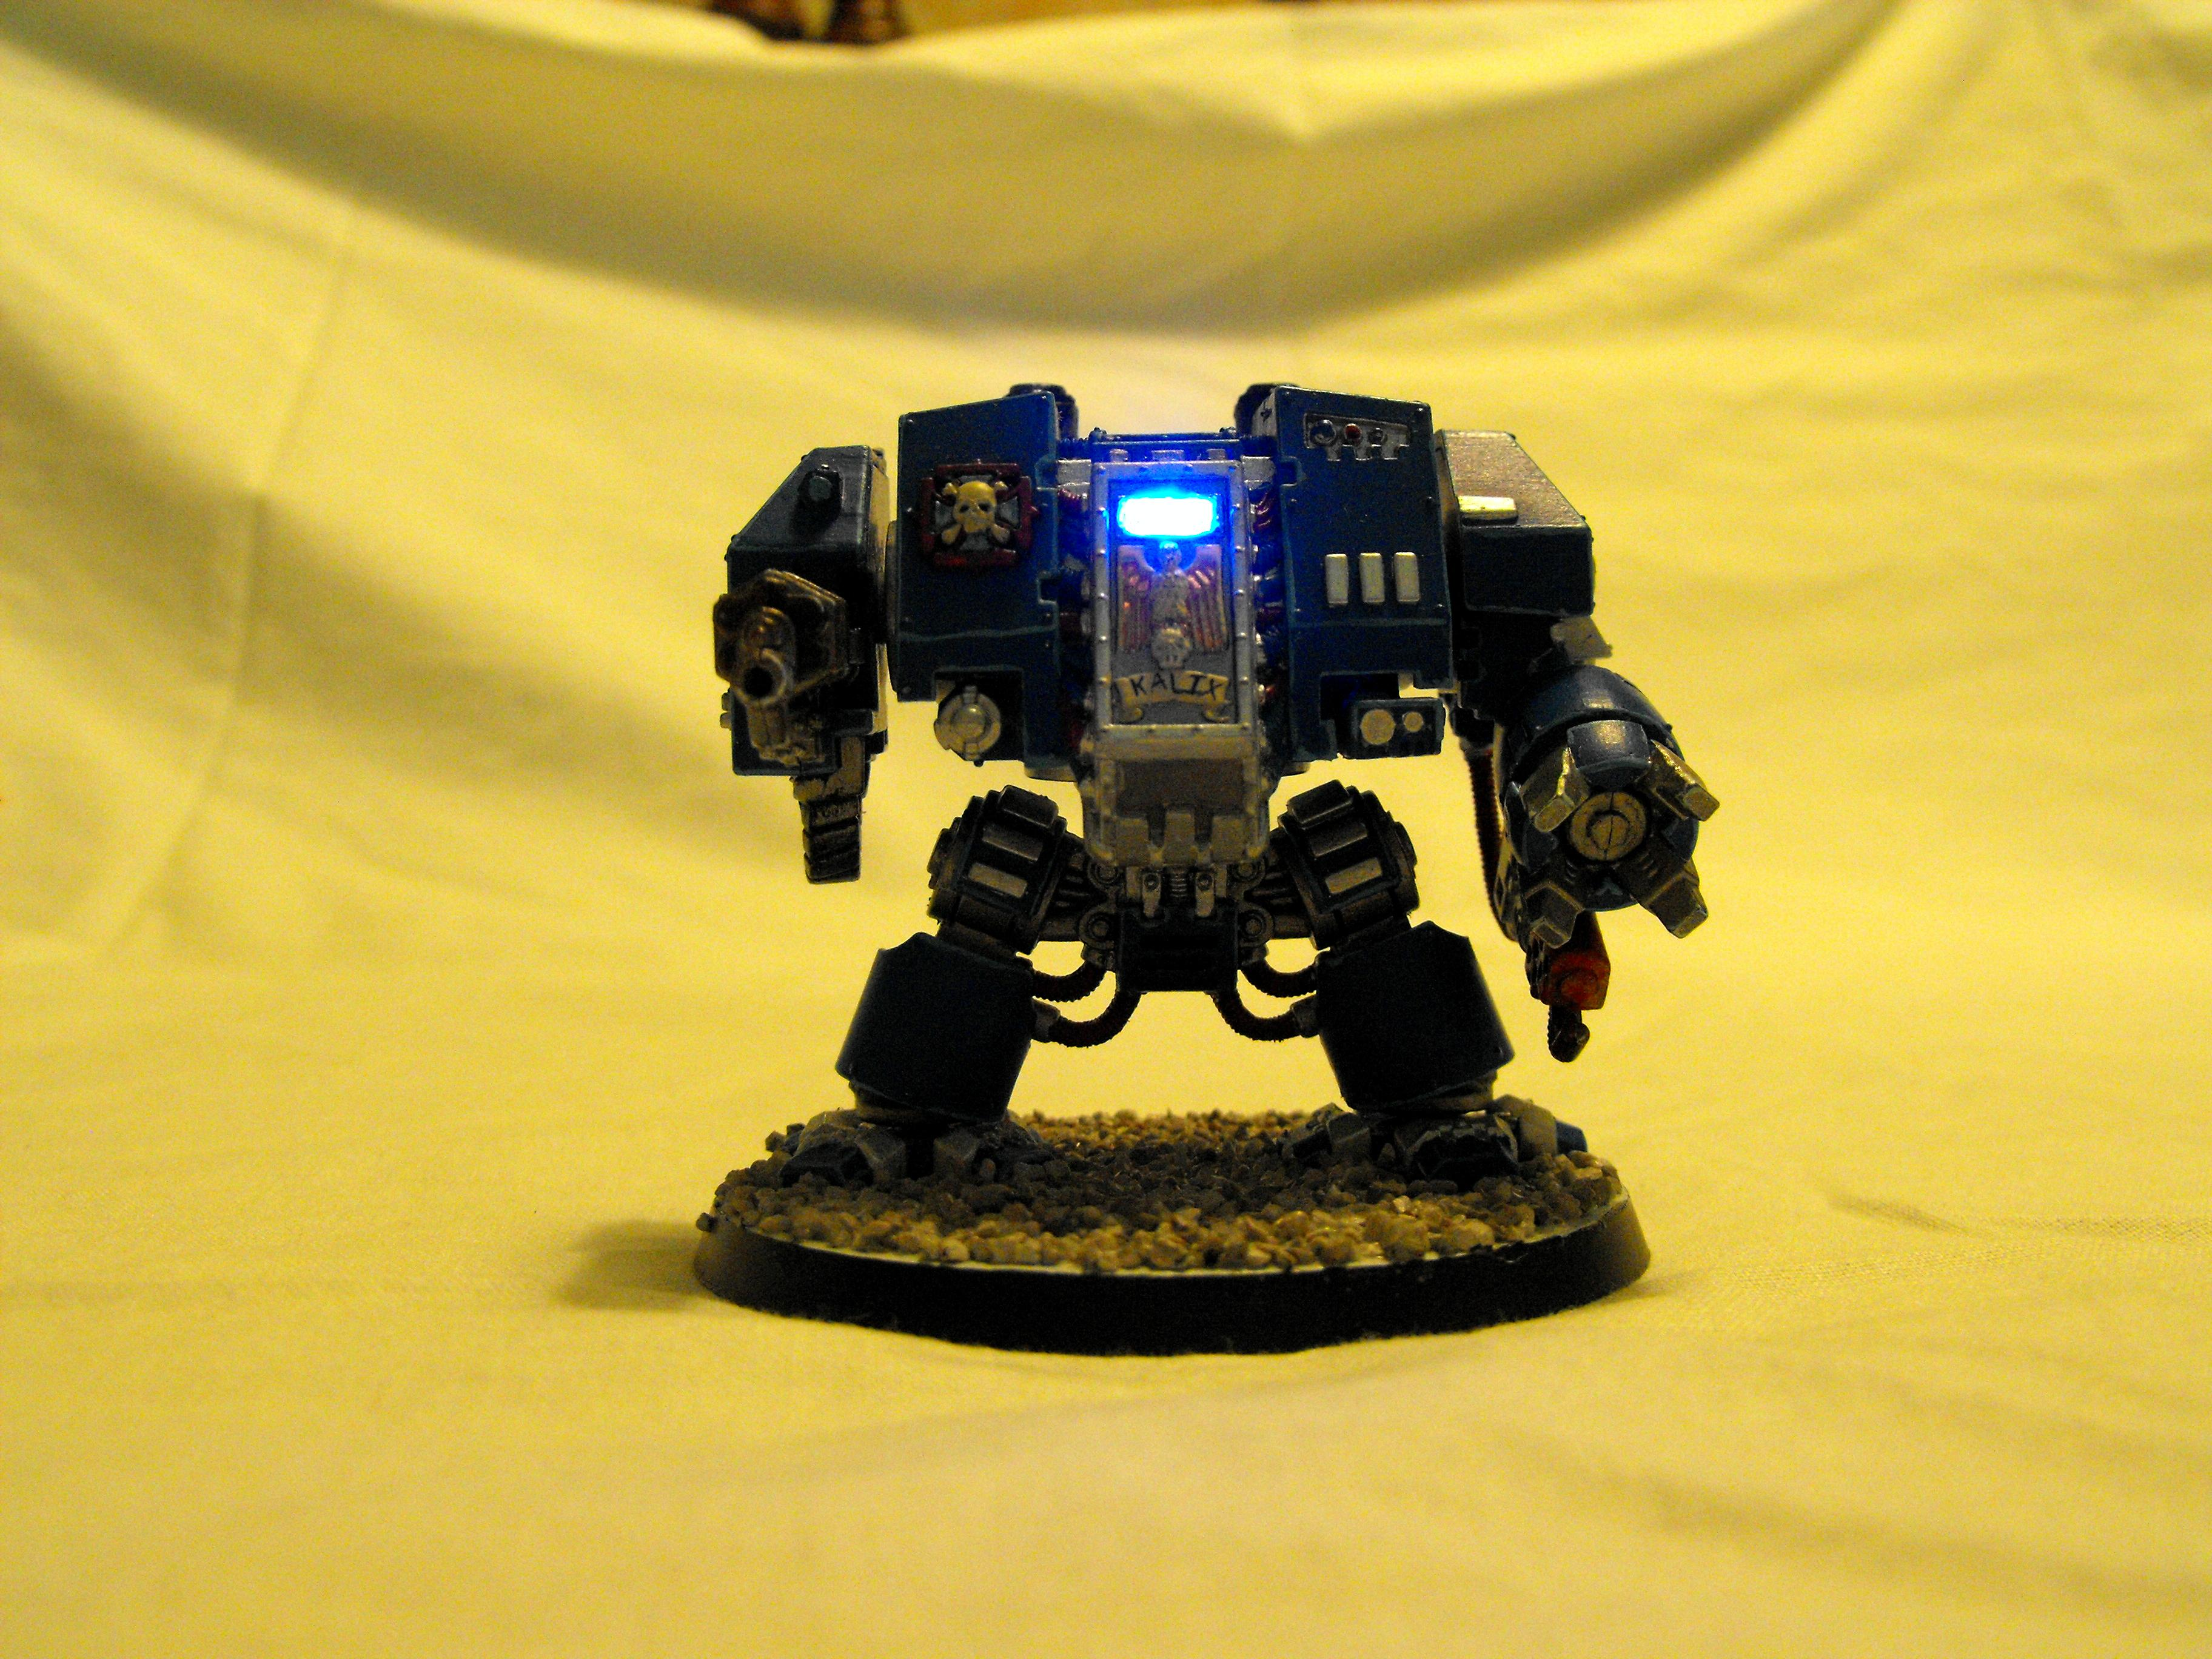 Dreadnought, LED, Space Marines, Warhammer 40,000